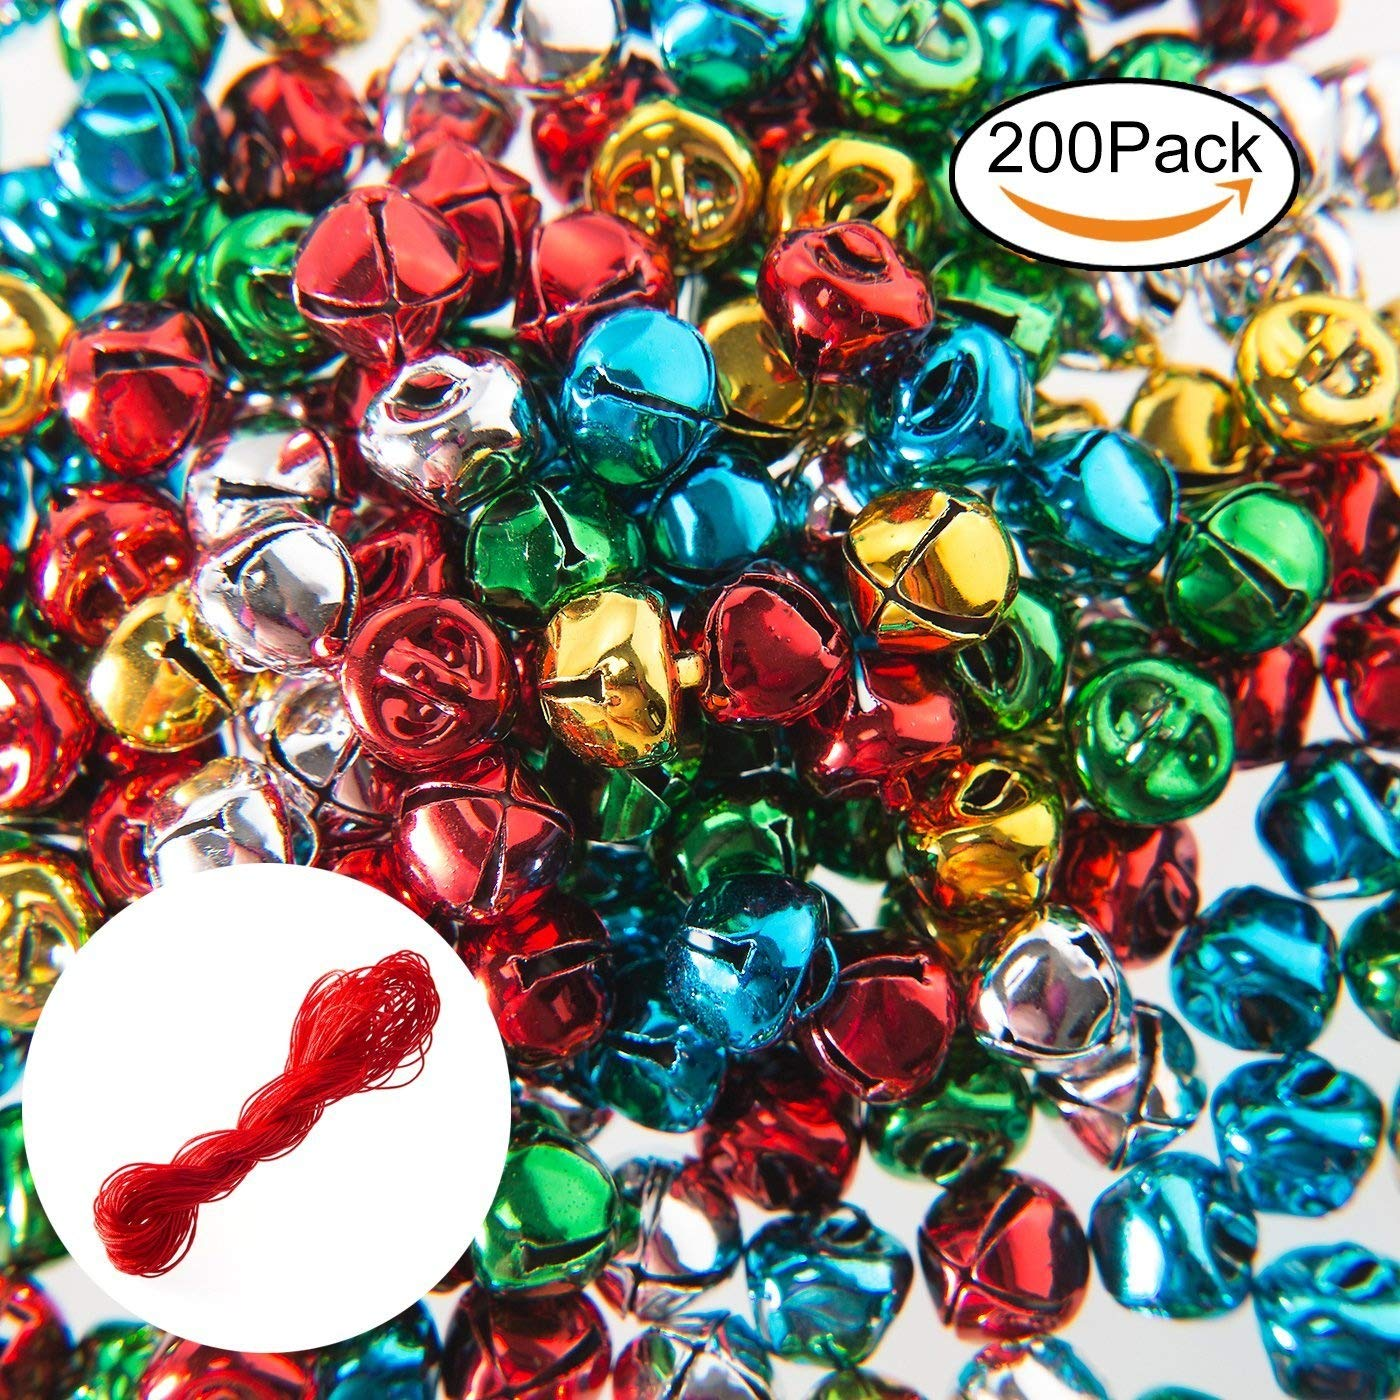 200PCS Jingle Bells,Small Bell Mini Bells Bulk with 25M Red Cords for Christmas, Party & Festival Decorations and Jewelry Making, 10 mm Salar